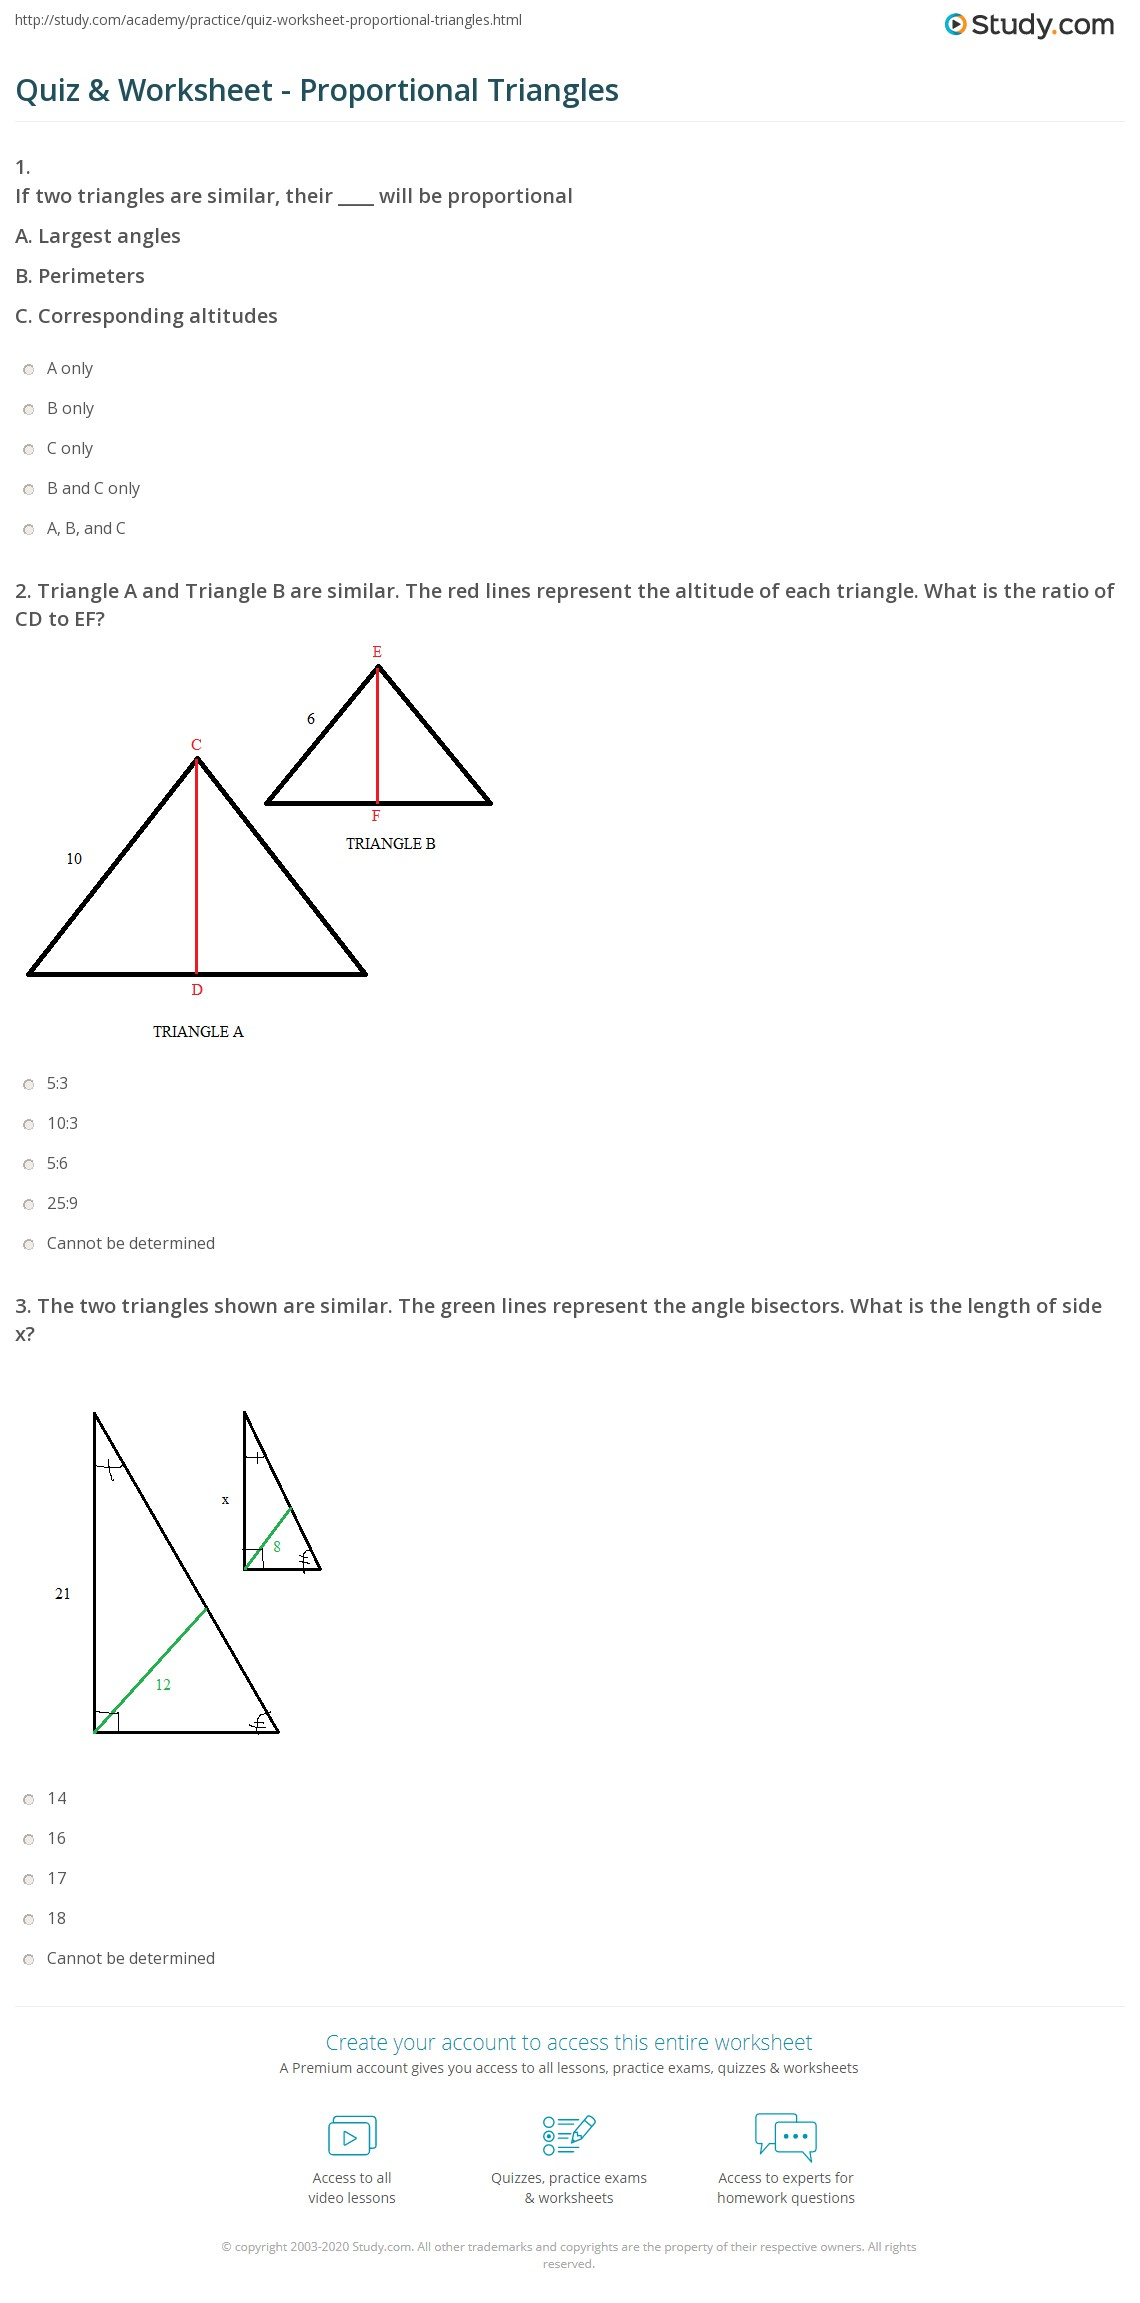 quiz worksheet proportional triangles. Black Bedroom Furniture Sets. Home Design Ideas